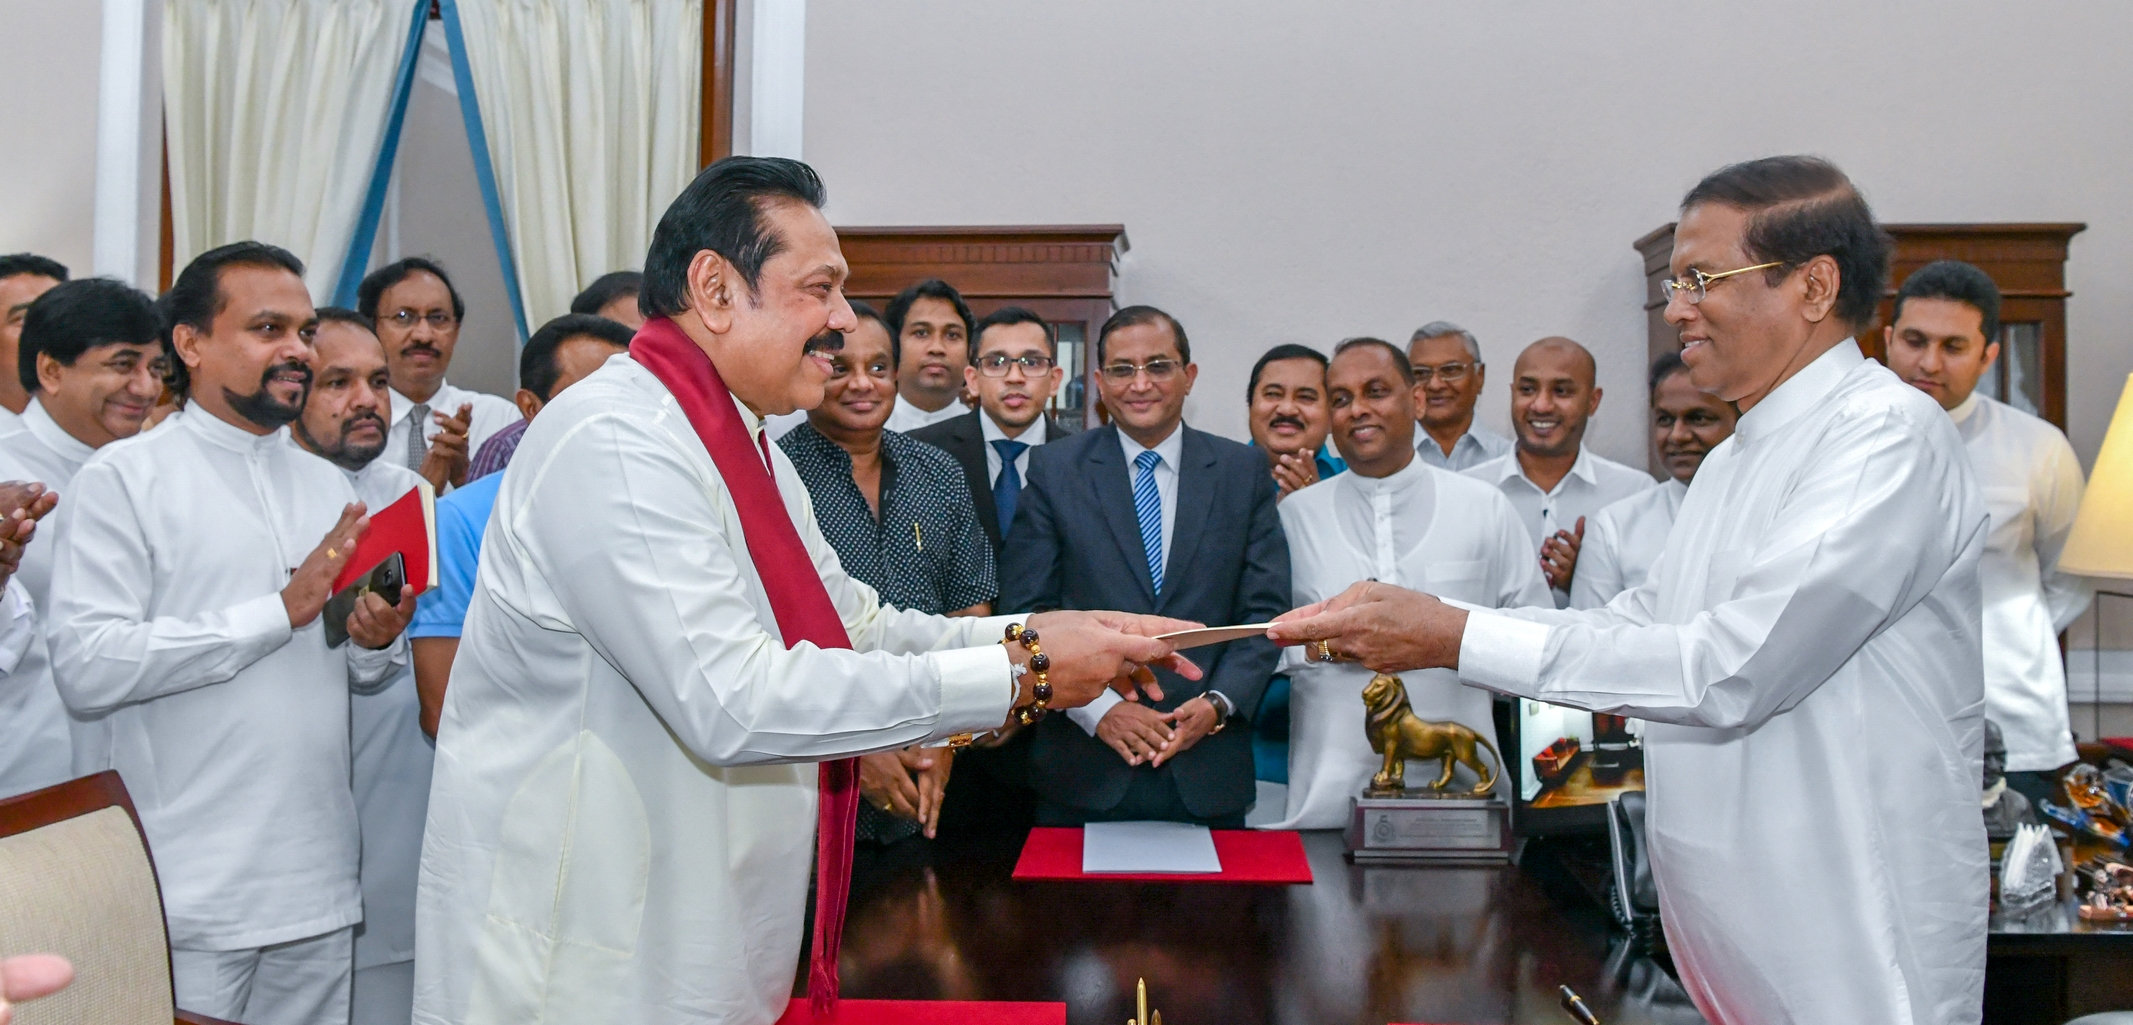 Sri Lanka's former President Mahinda Rajapaksa (Front-L) is sworn in as the new Prime Minister before President Maithripala Sirisena in Colombo on Friday. Reuters